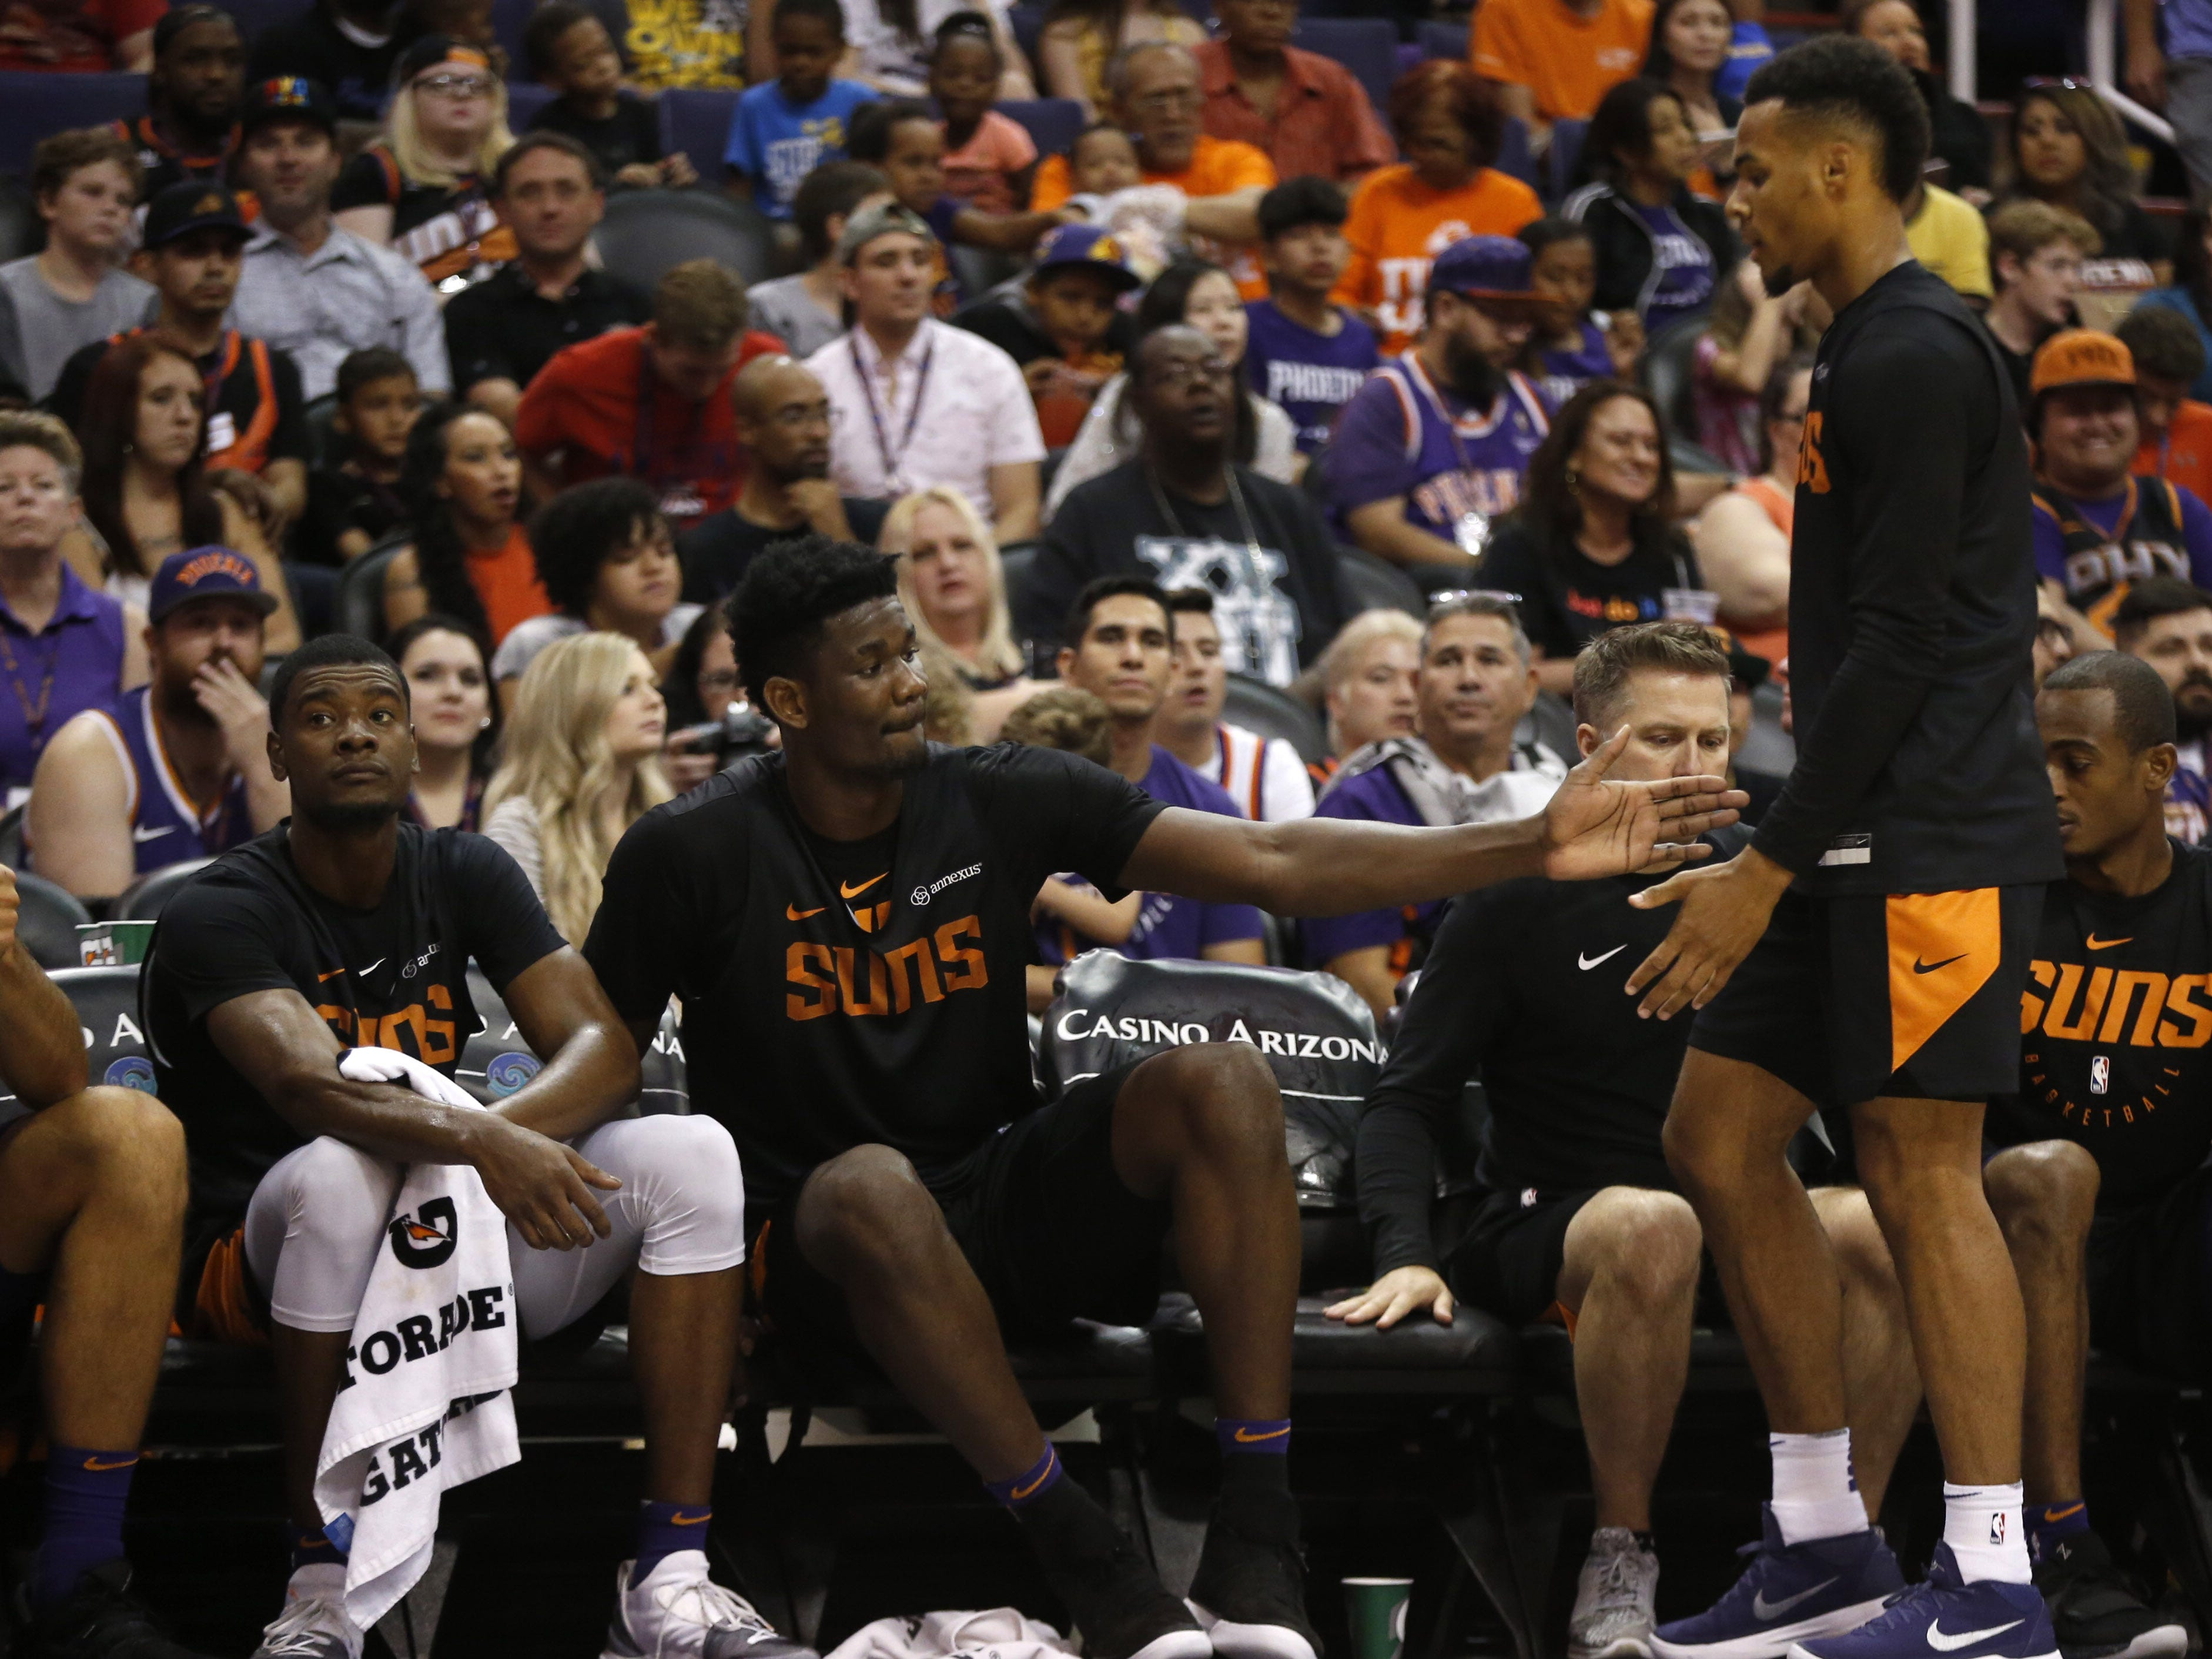 Suns Deandre Ayton high-fives Ellie Okobo on court during an Open Practice at Talking Stick Resort Arena in Phoenix, Ariz. on Sept. 29, 2018.